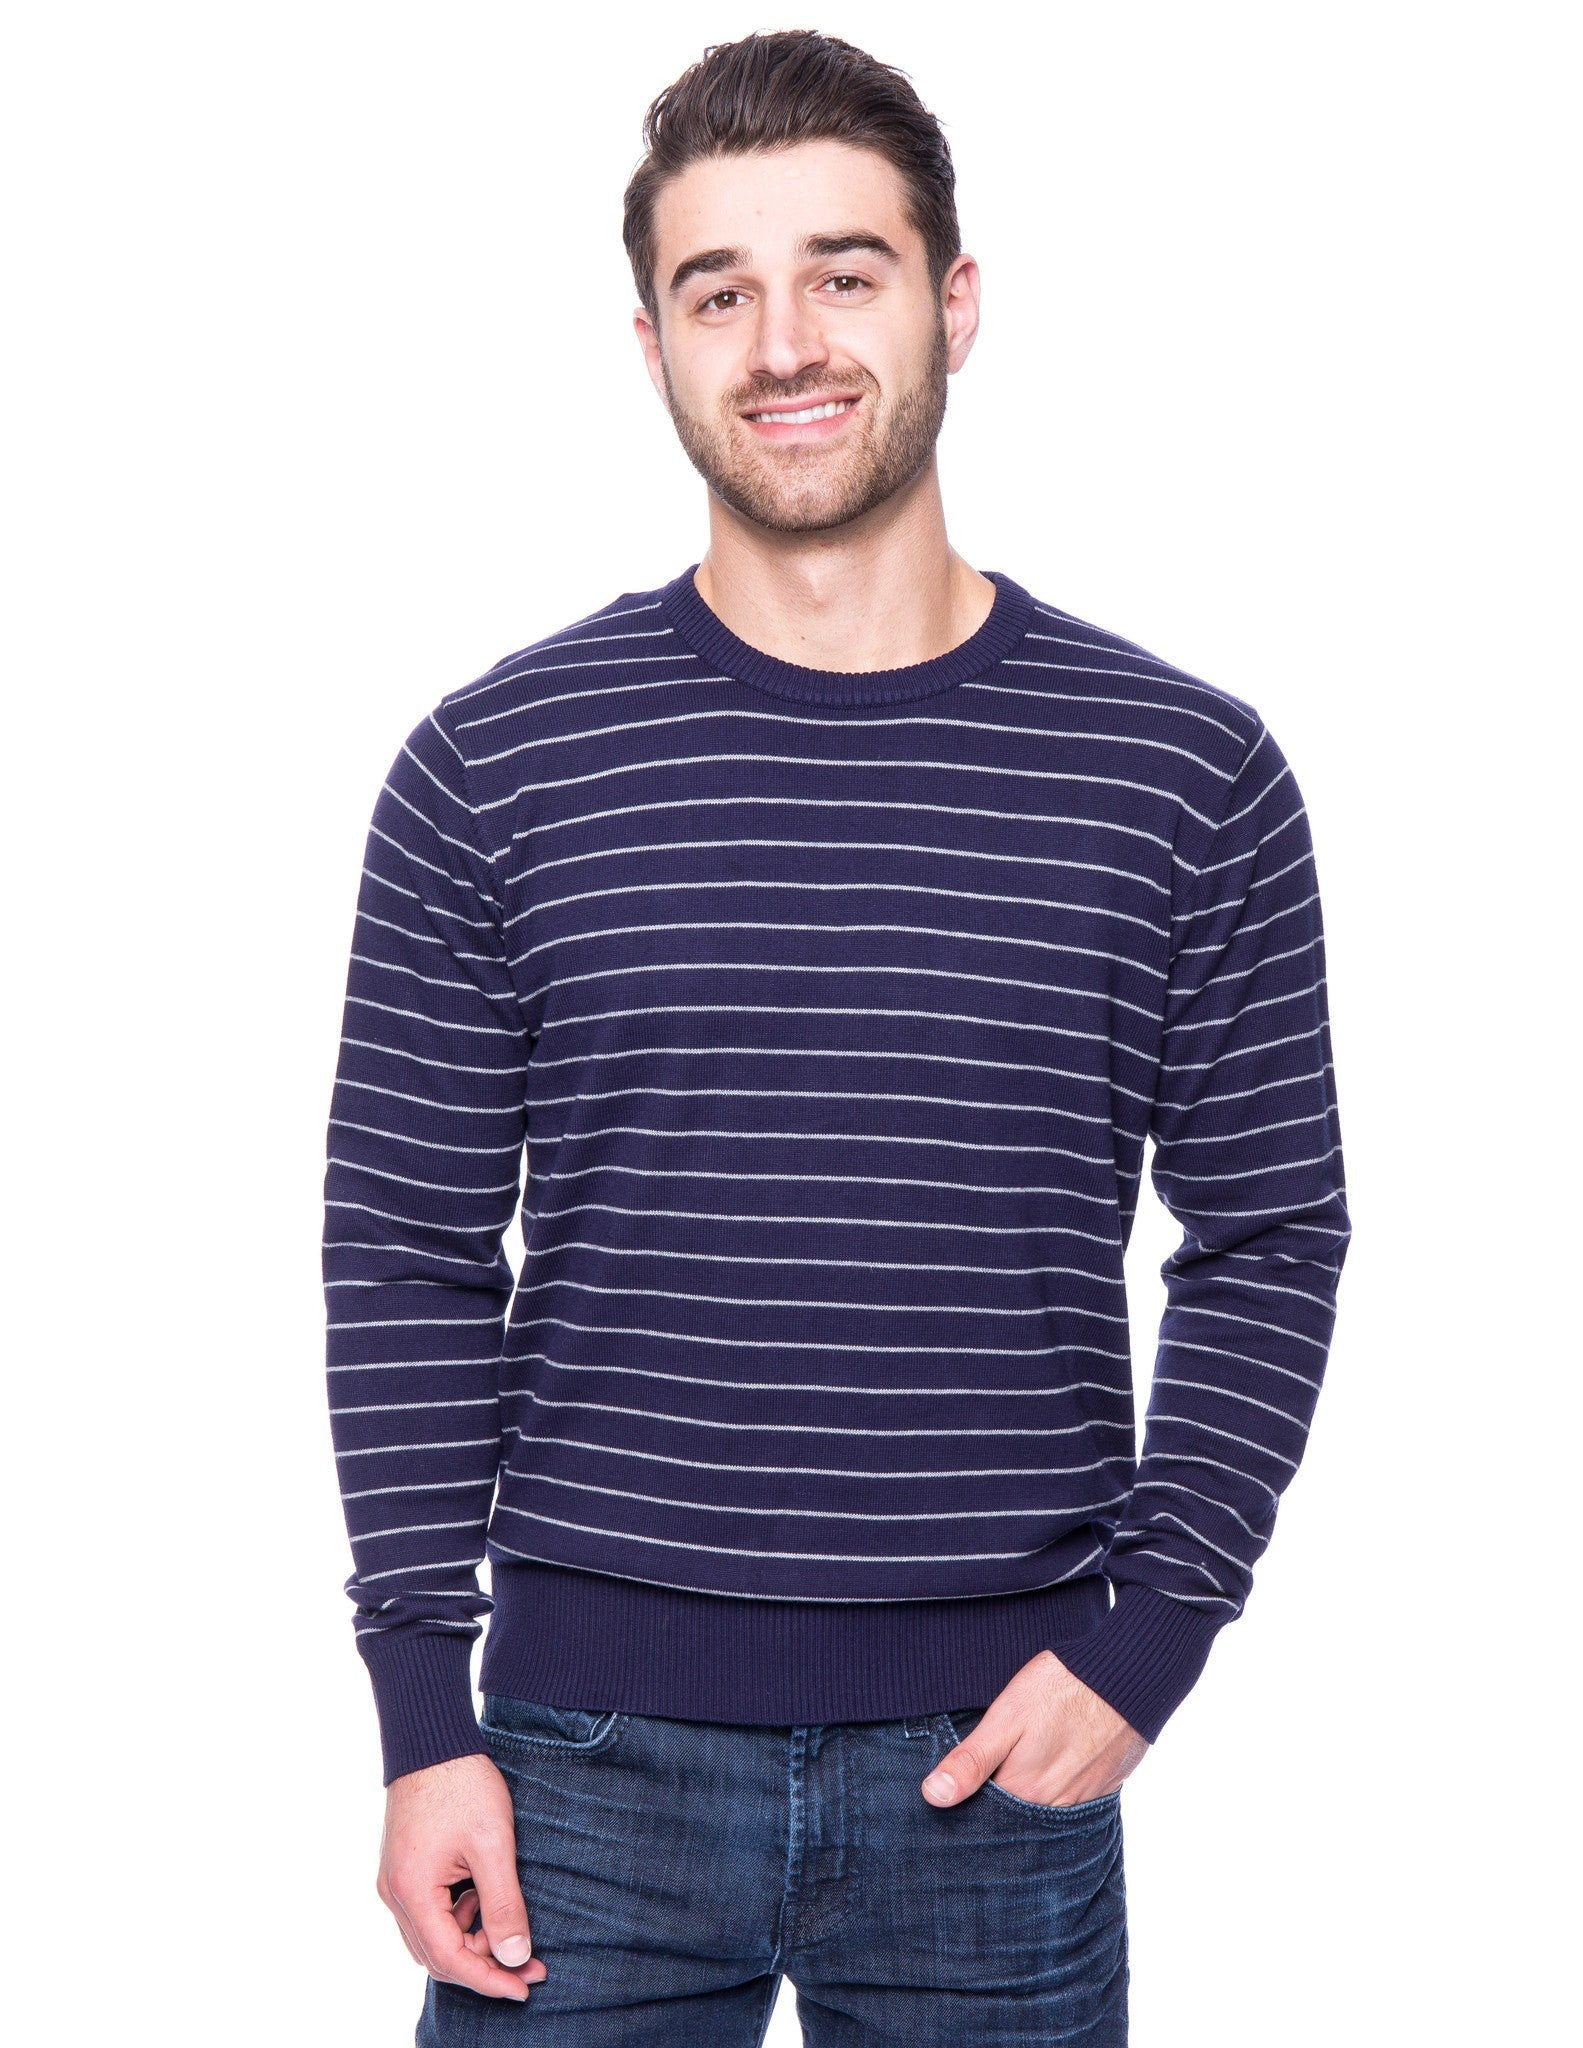 Cotton Crew Neck Sweater - Stripes Navy/Heather Grey